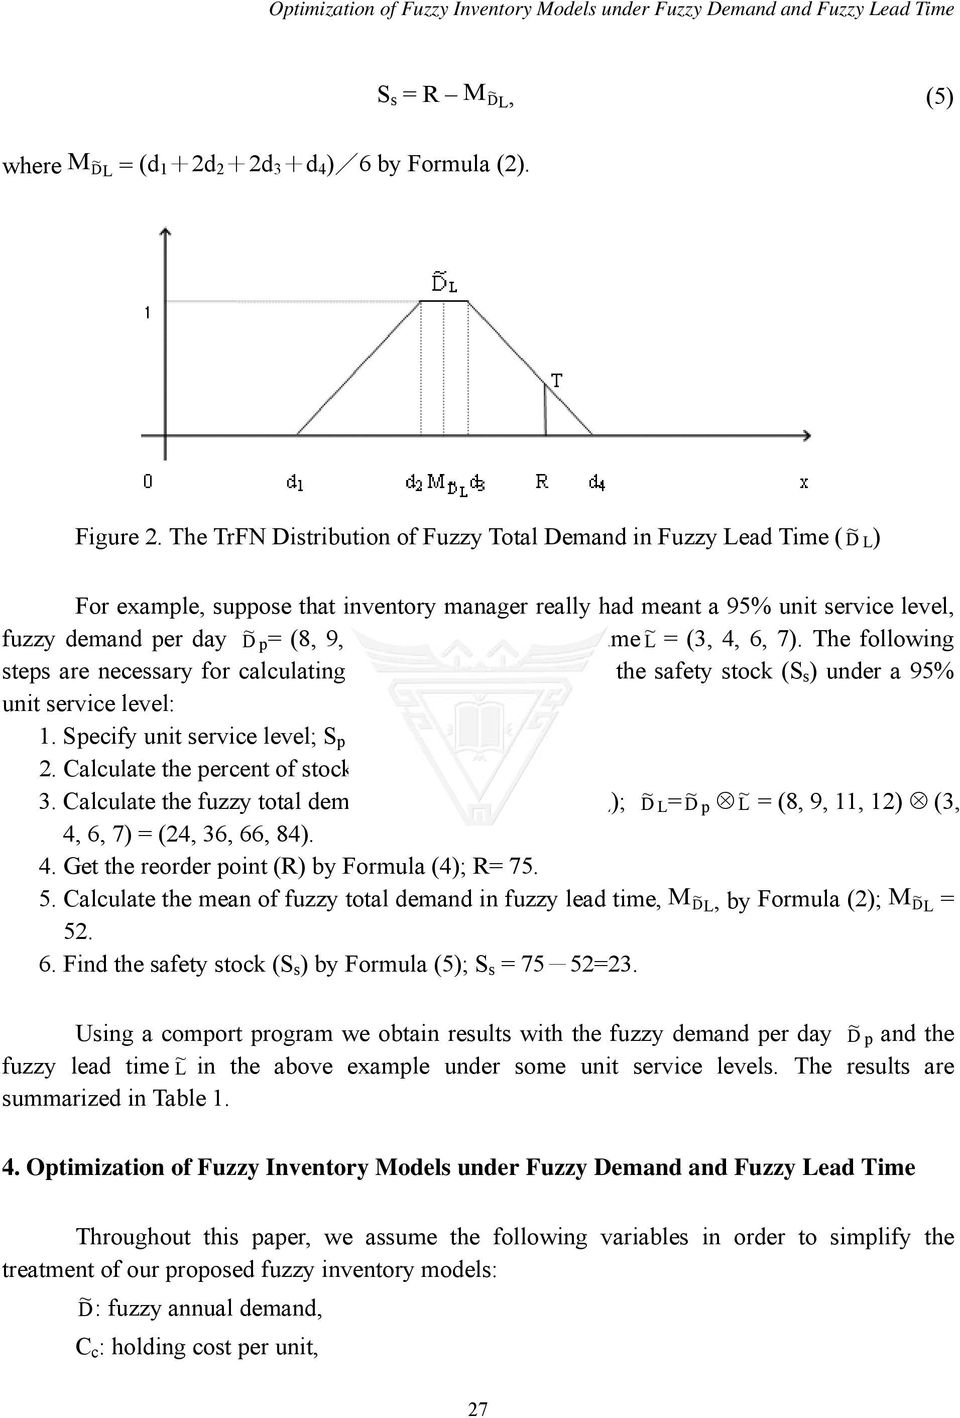 Optimization of Fuzzy Inventory Models under Fuzzy Demand and Fuzzy